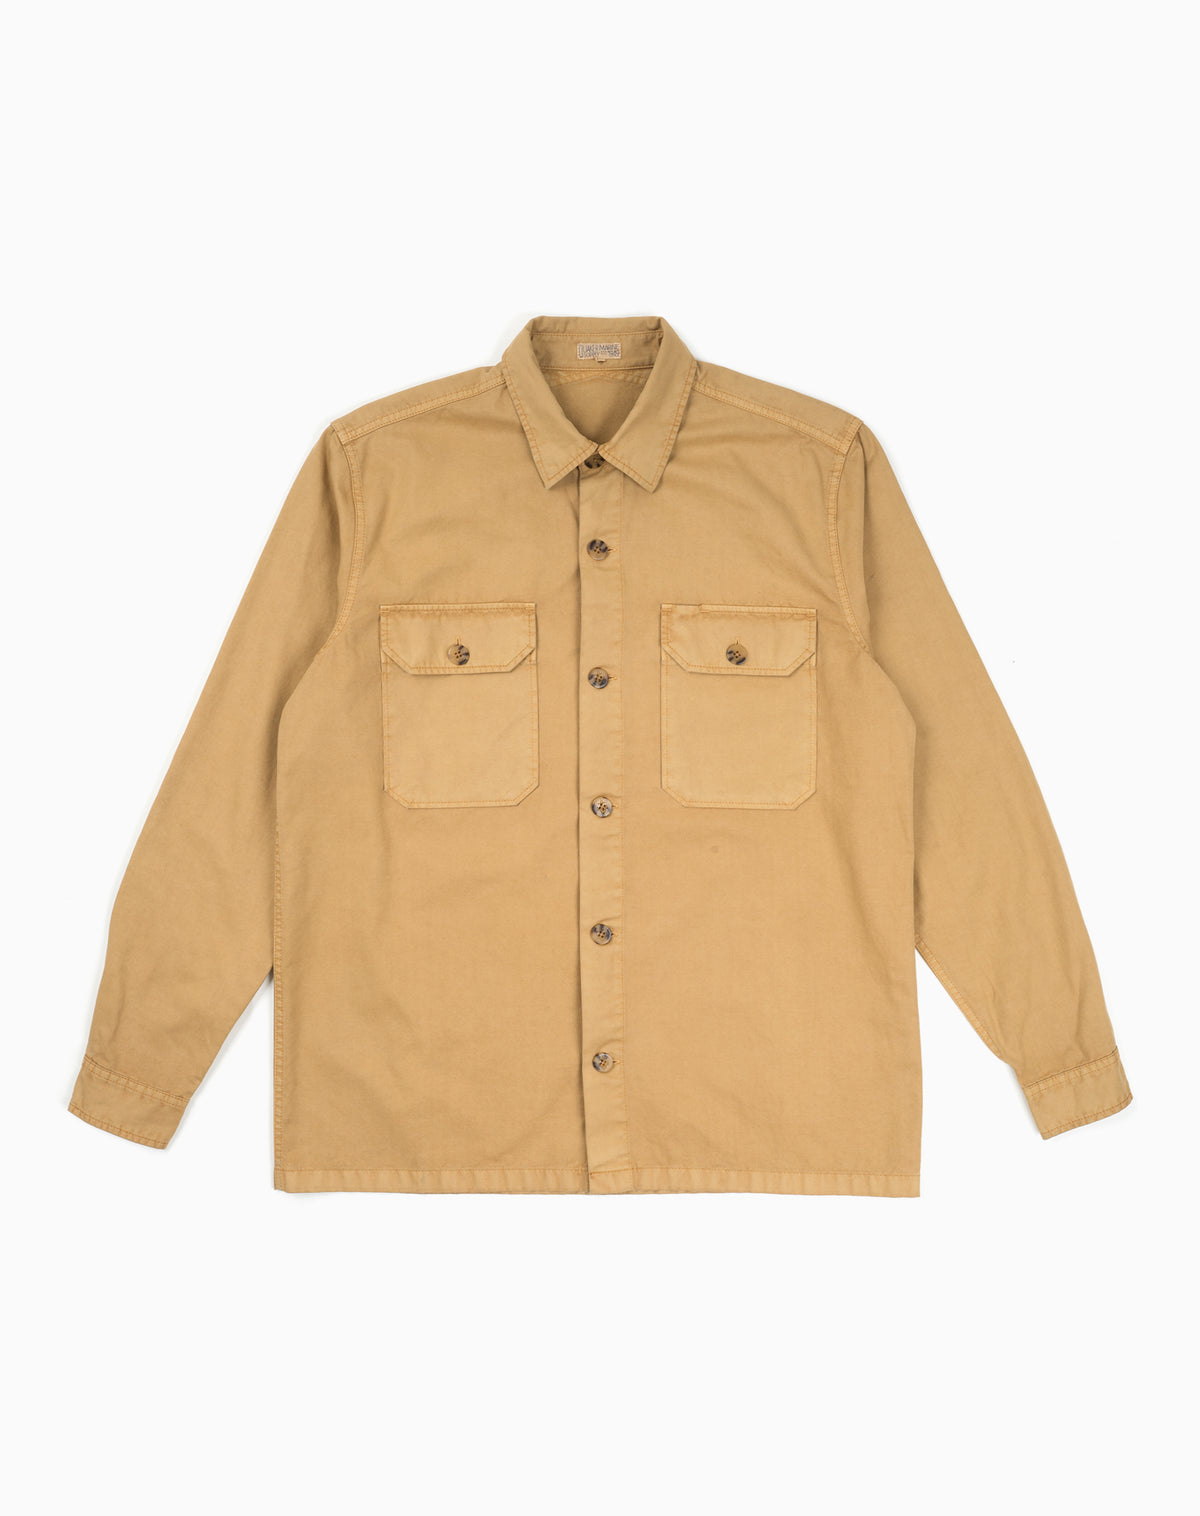 MacArthur Shirt in British Khaki